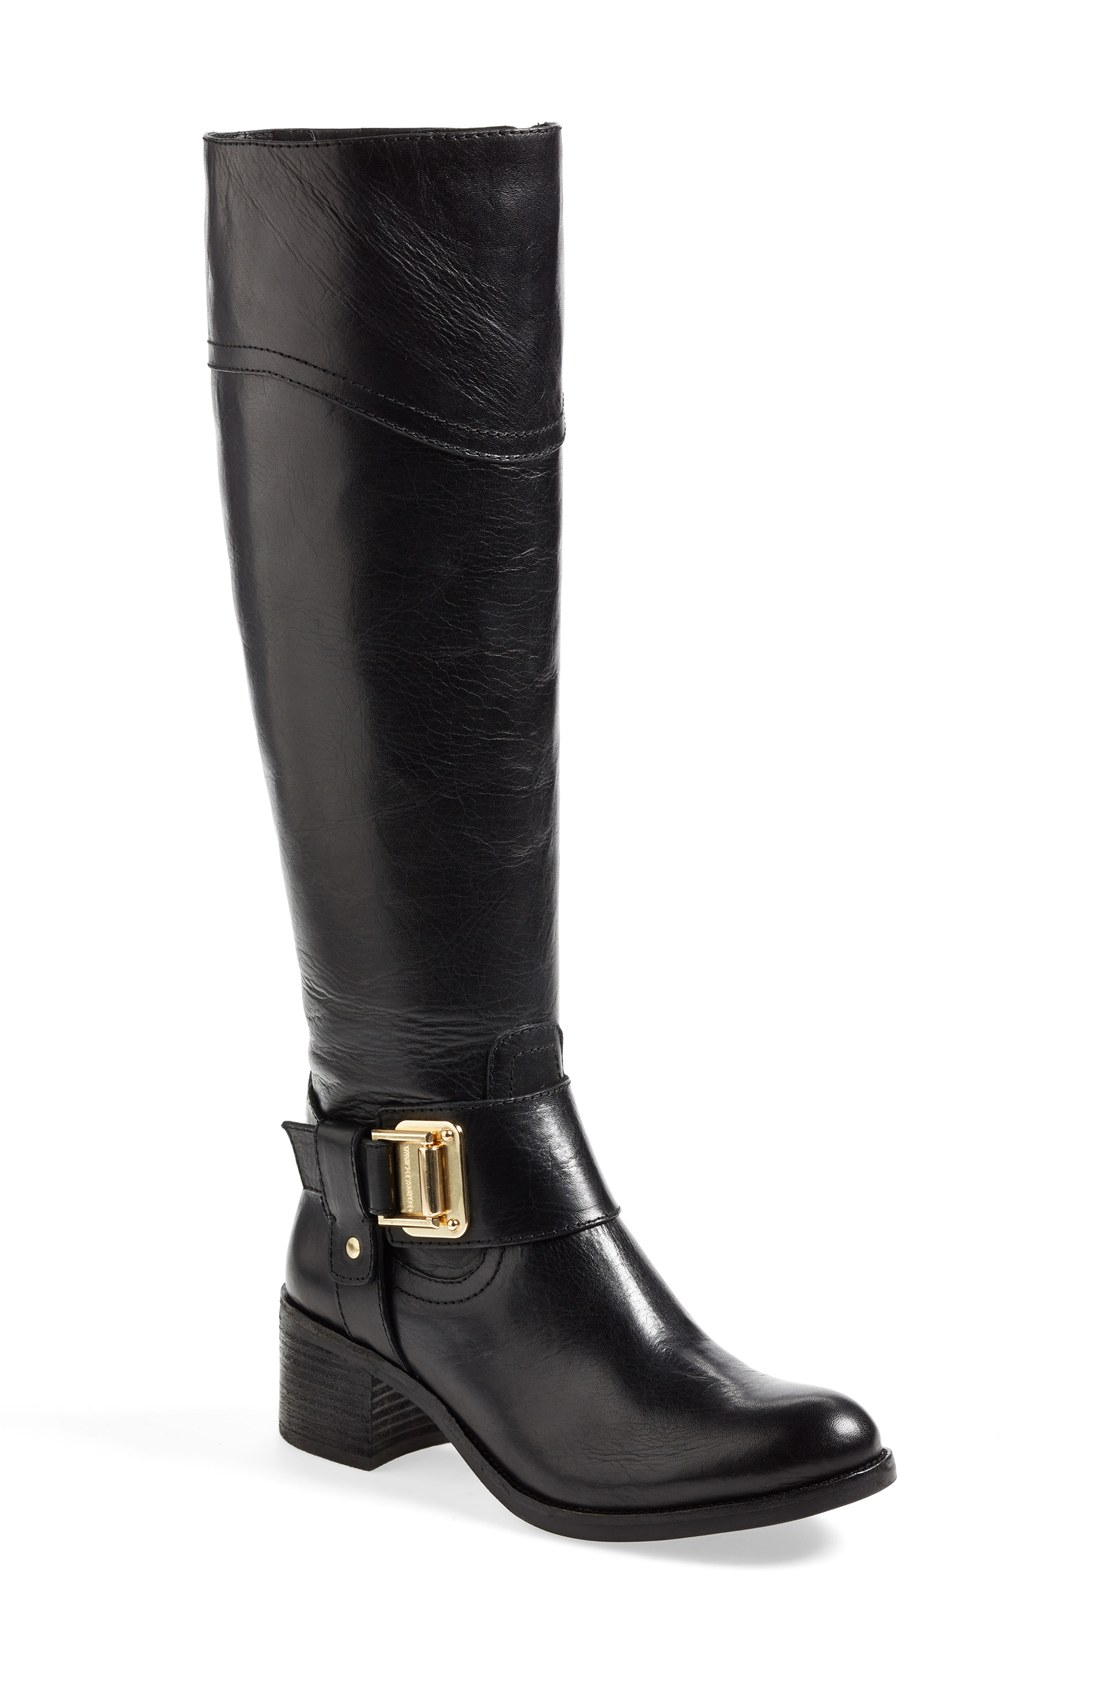 Dear Mr. Blake W. Nordstrom, I received order # , Item # today, October 8. The item, black Biondo Boots, came from the Nordstrom store at the Mall of American in Minnesota.